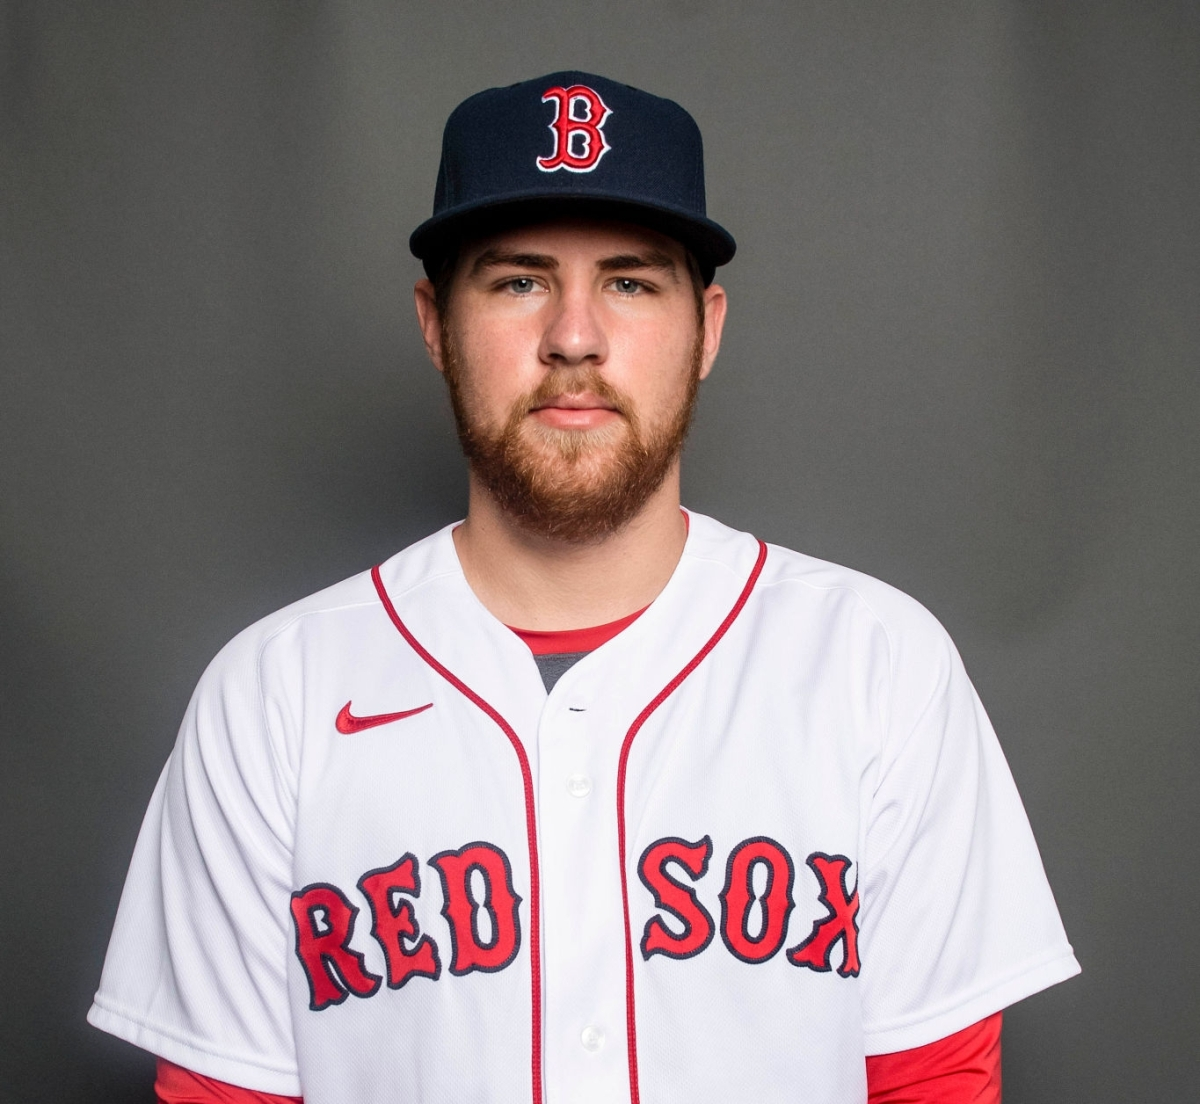 Red Sox pitching prospect Josh Winckowski wraps up solid spring with 3 strong innings of work against Twins